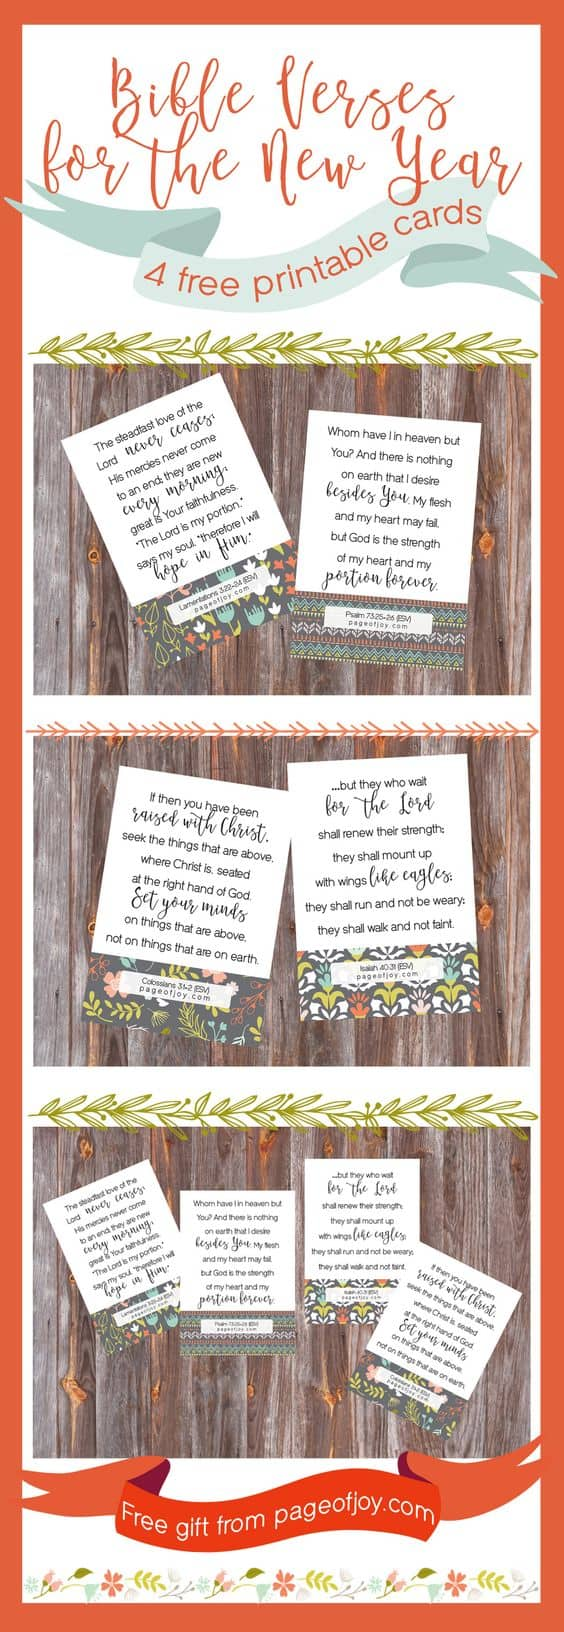 Bible Verses for the New Year (4 FREE Printable Cards)